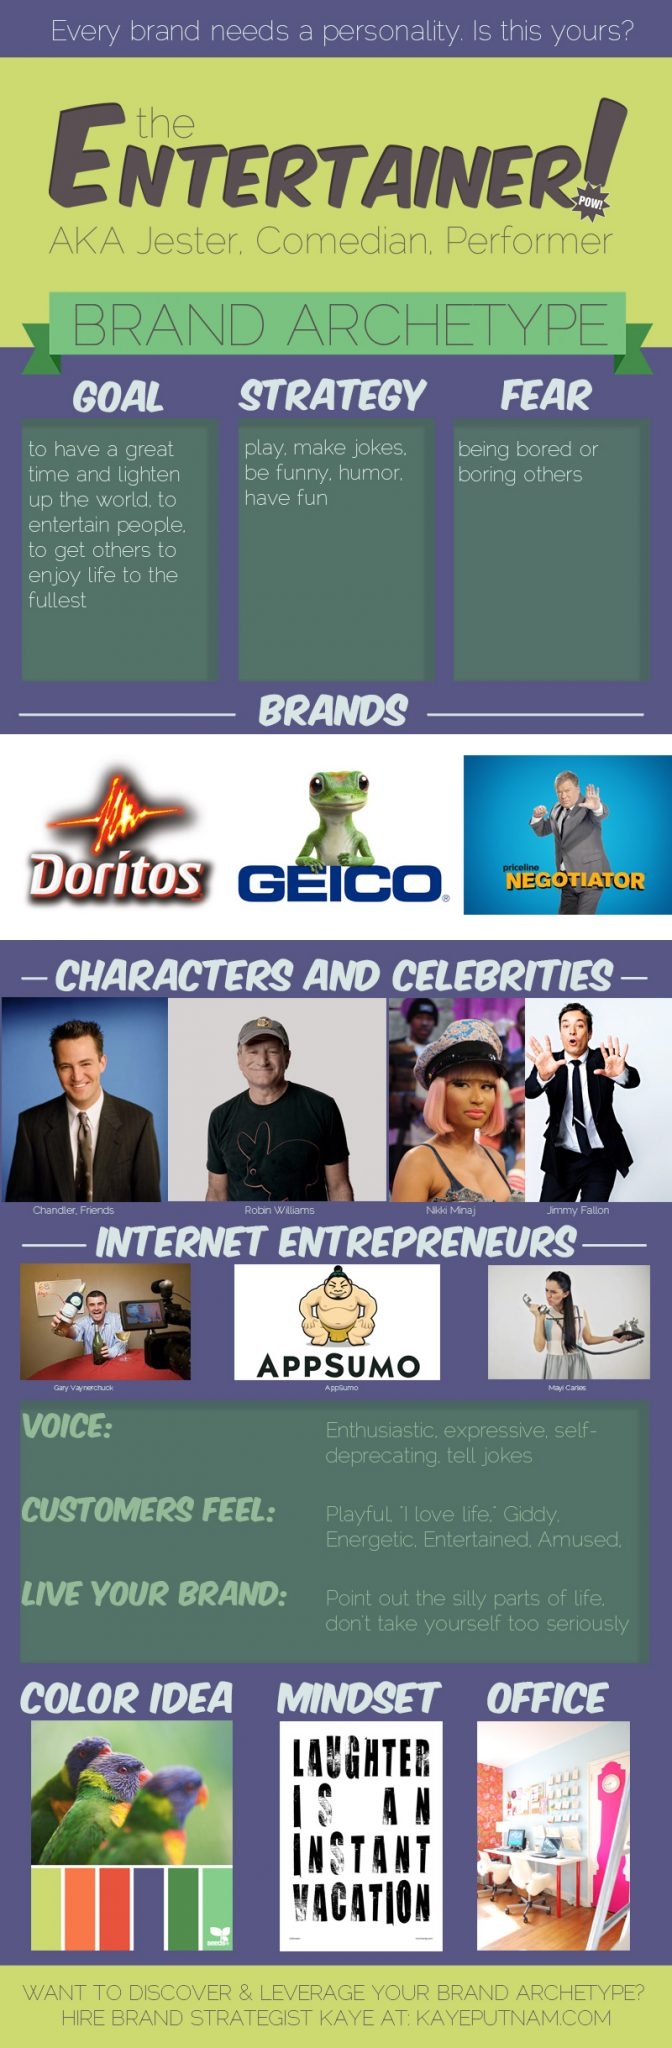 Entertainer Brand Archetype Infographic